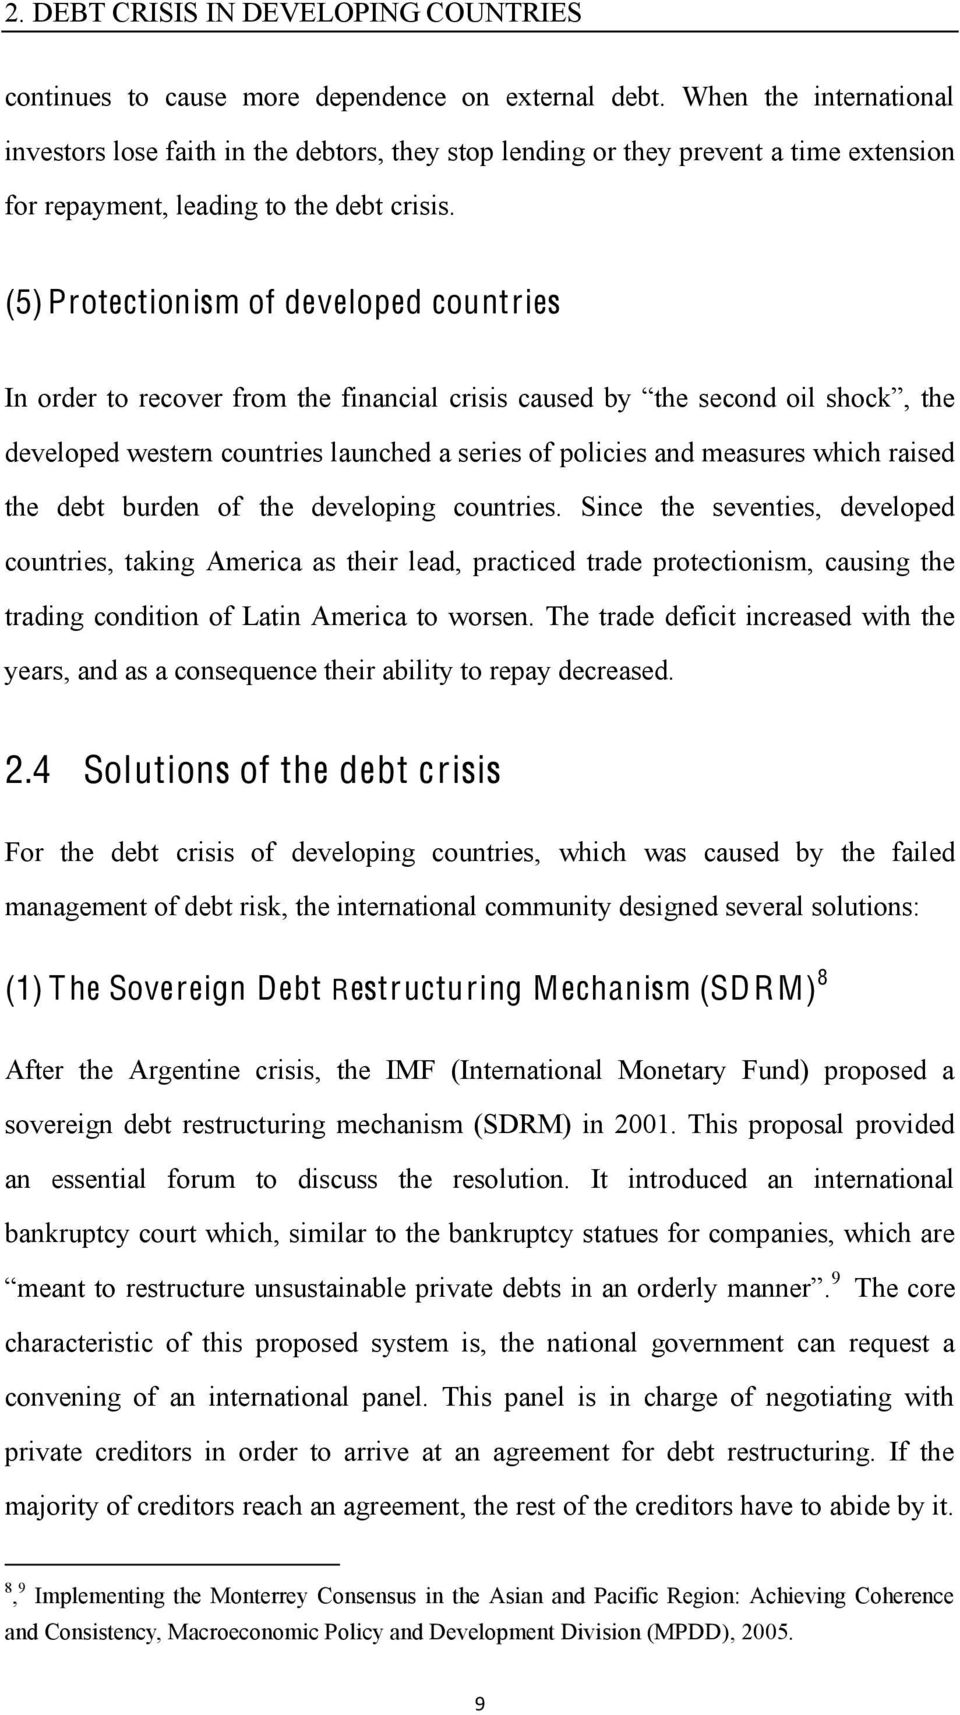 (5) Protectionism of developed countries developed western countries launched a series of policies and measures which raised the debt burden of the developing countries.